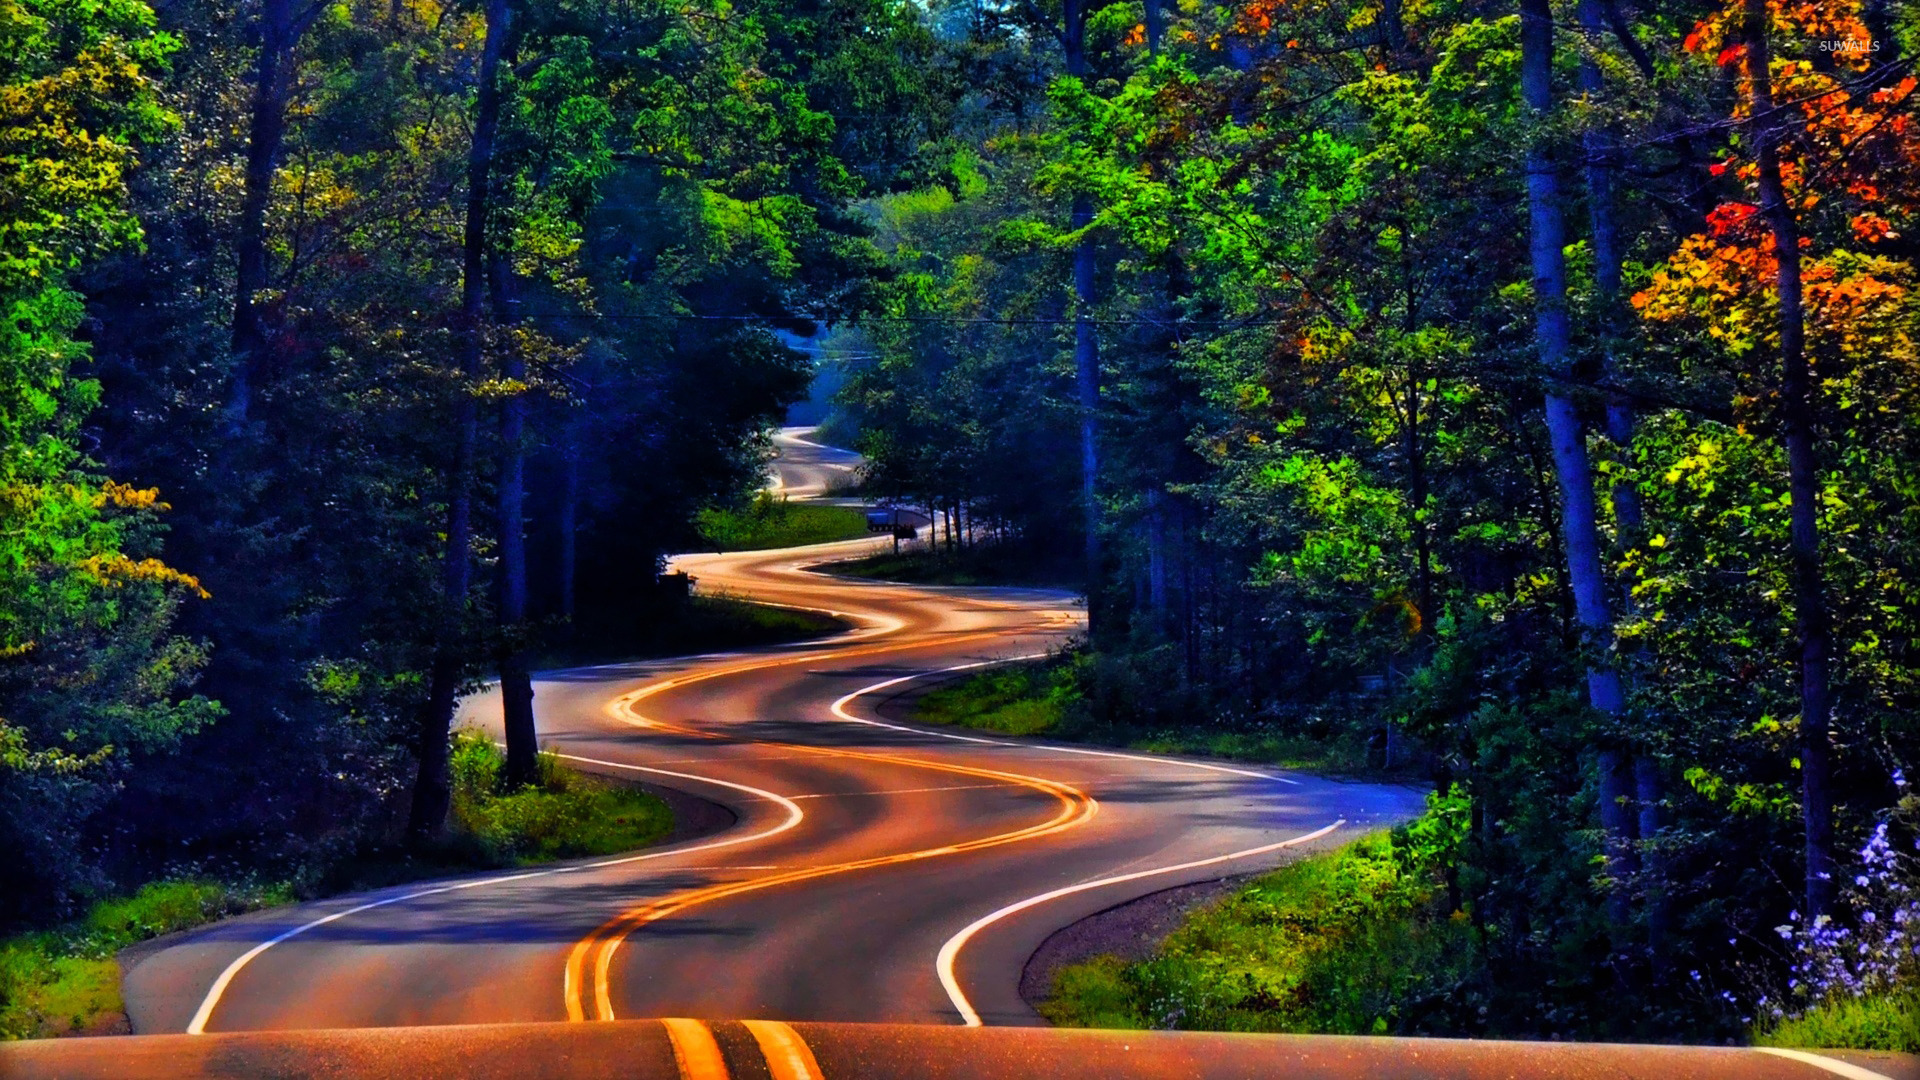 Curvy forest road wallpaper - Nature wallpapers - #20742